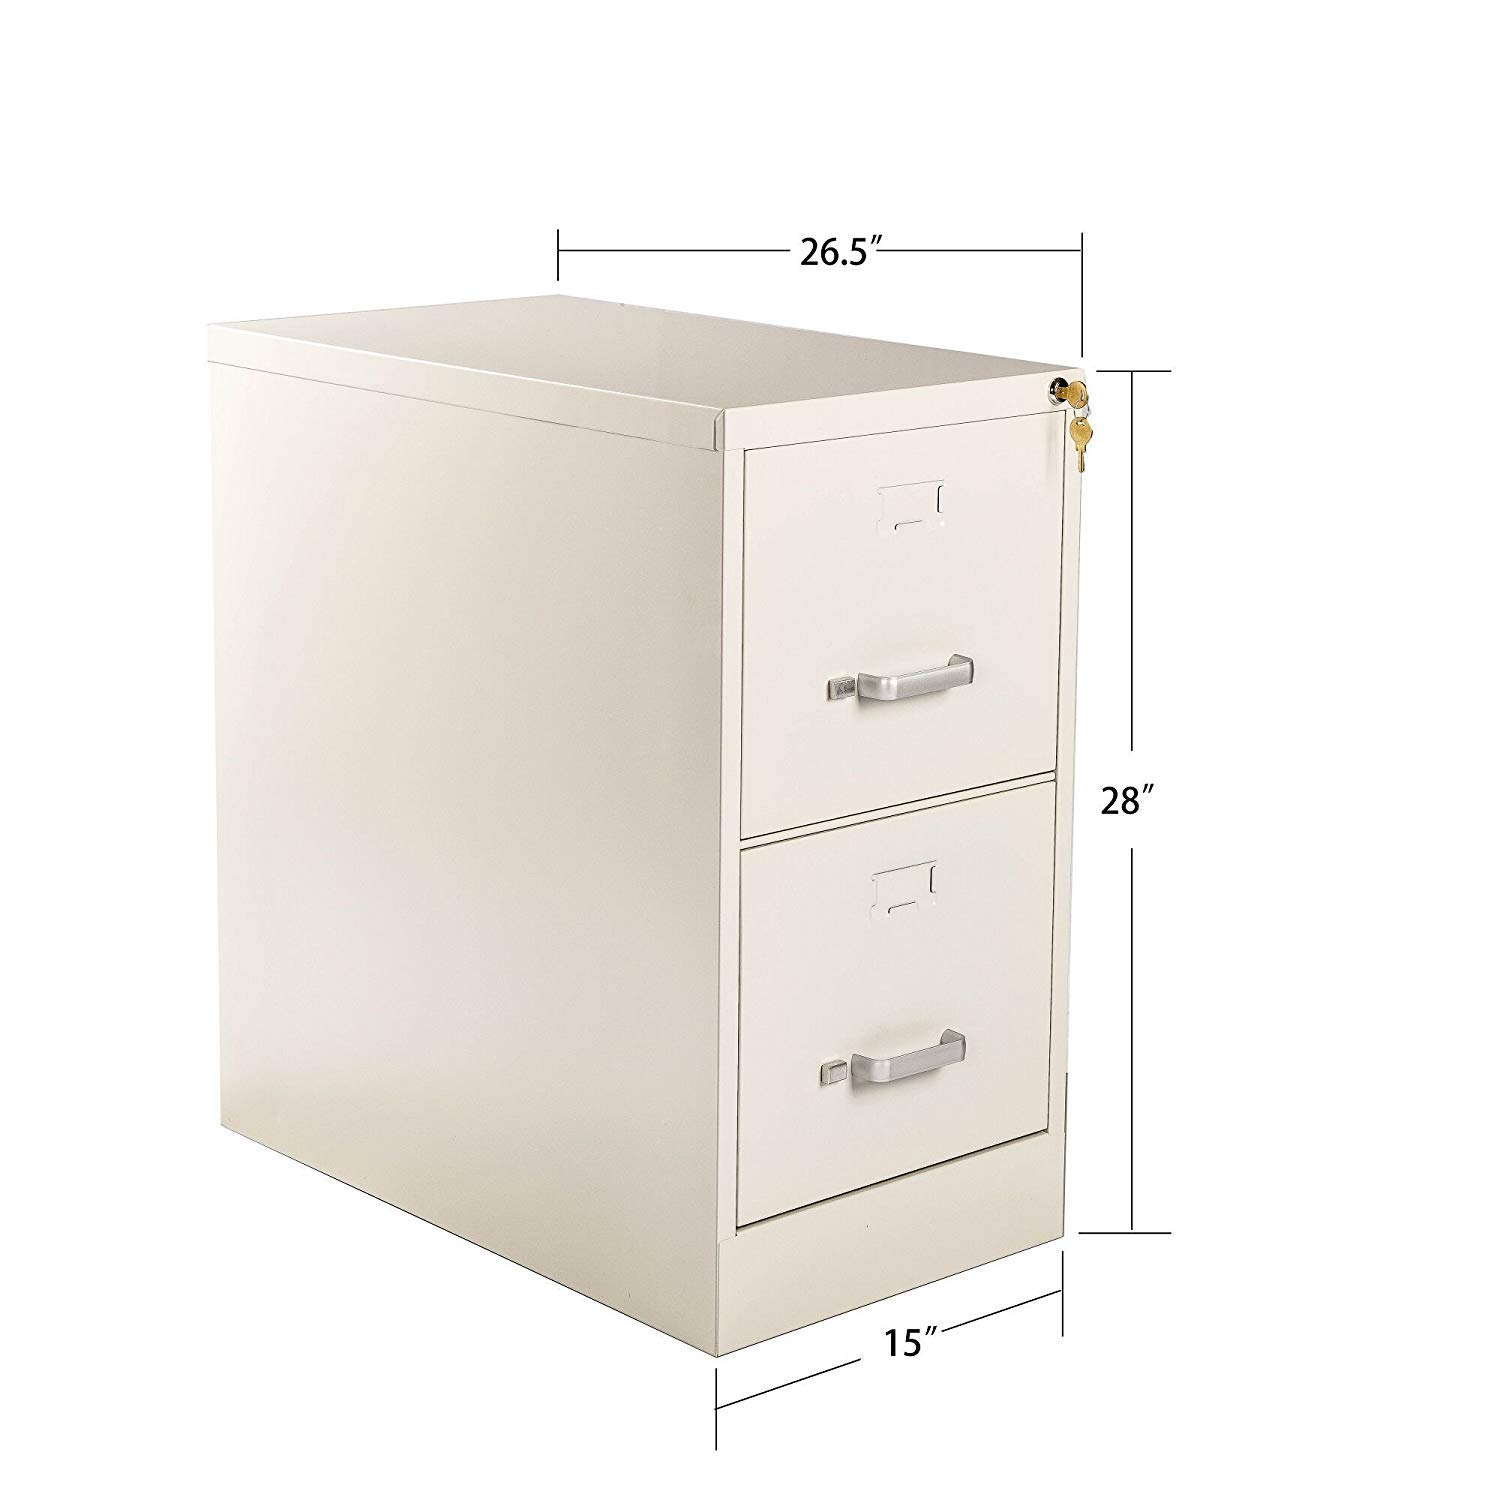 Henlus 2 Drawer Flie Cabinet with Lock Fully Assembled Metal Filing Cabinets for Home Office(Putty) (Putty, 2 Drawer) by Henlus (Image #4)